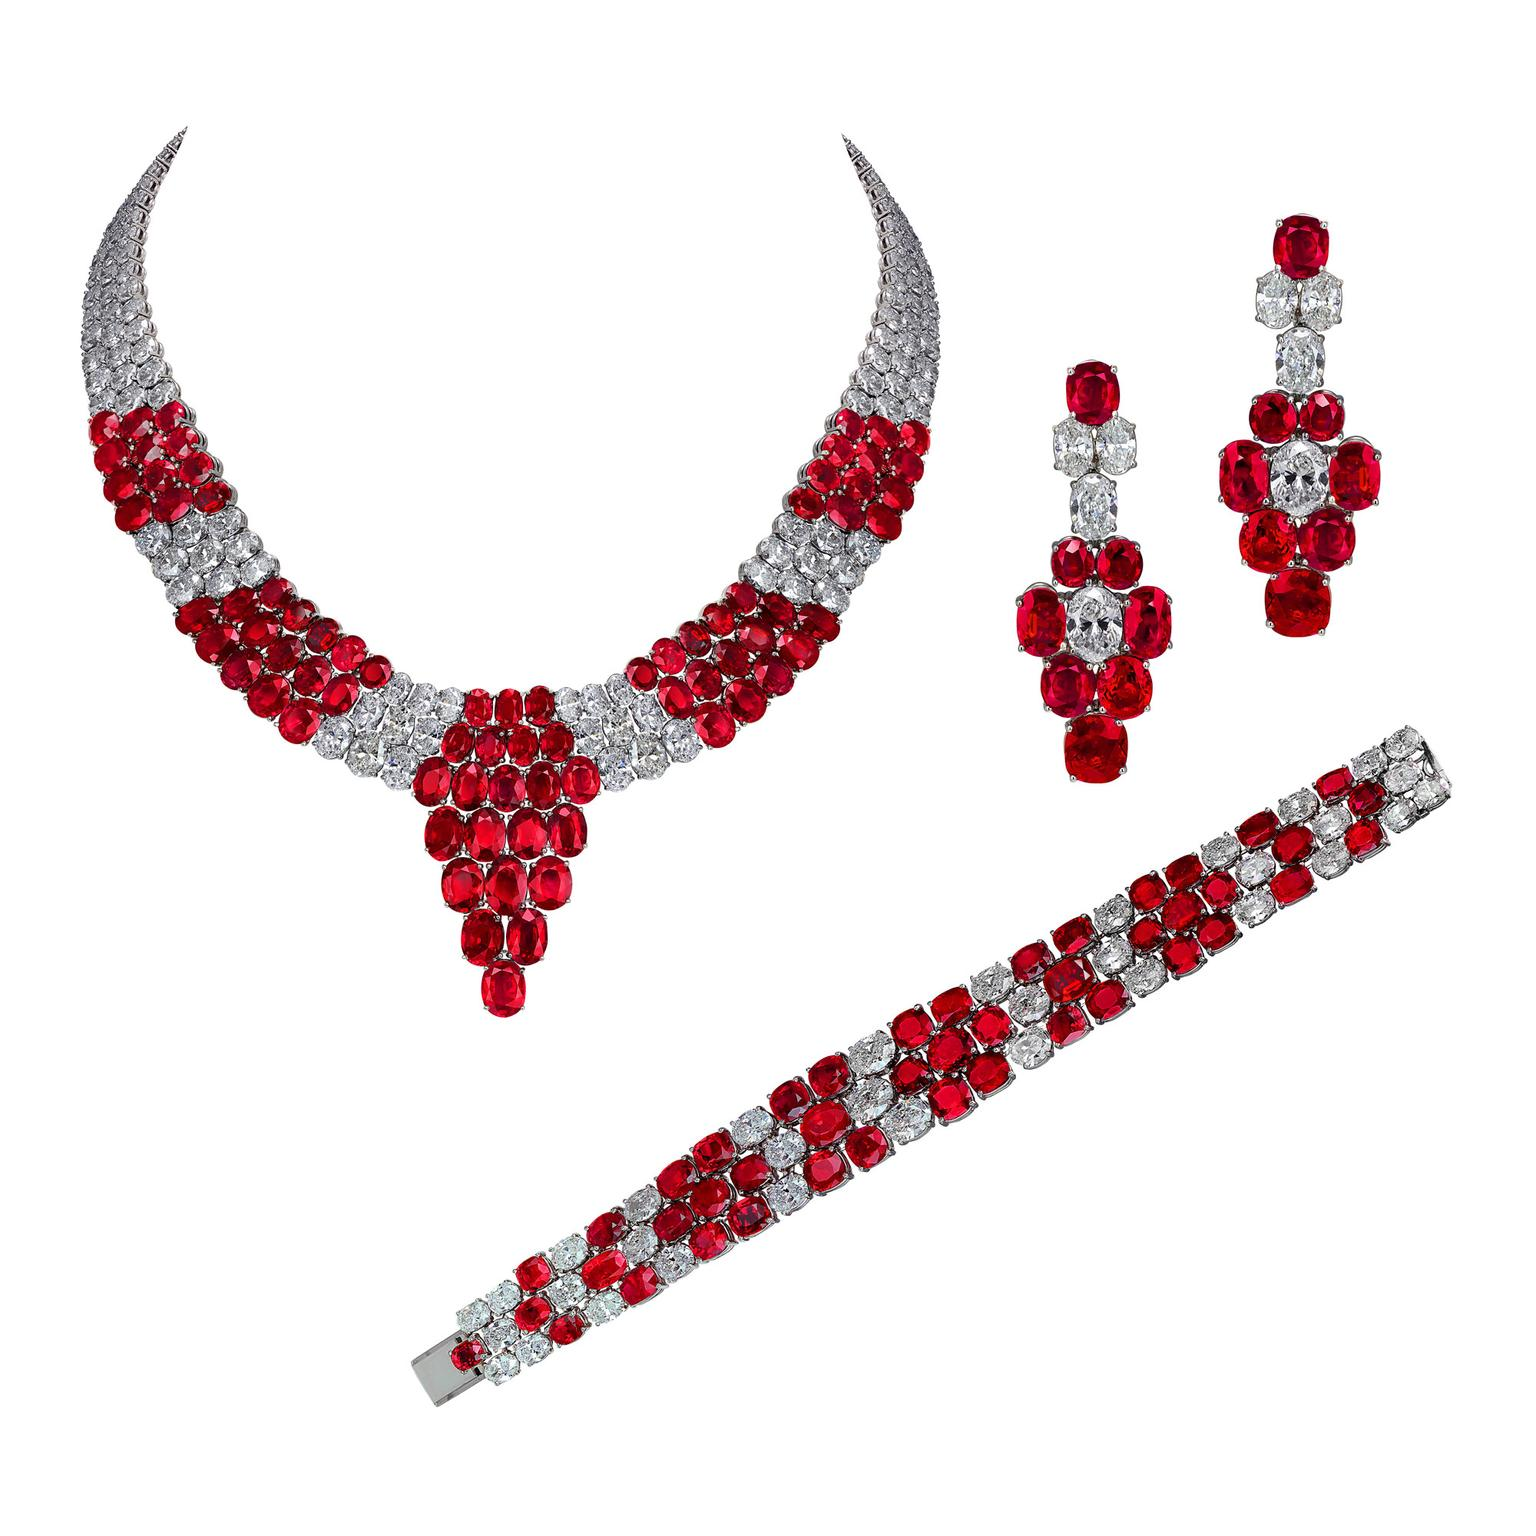 Jacob & Co Burmese ruby jewellery set